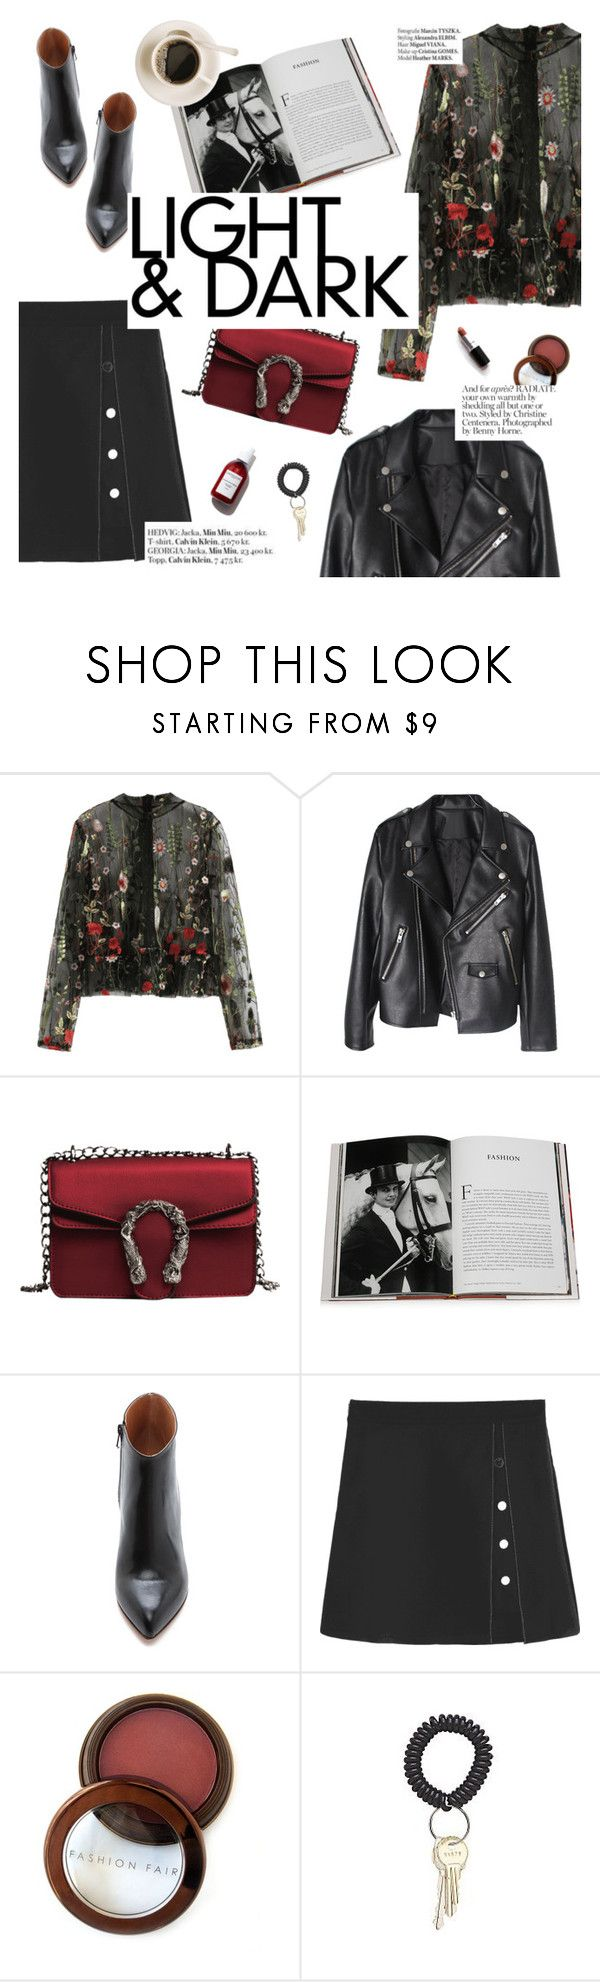 """Light&dark"" by punnky ❤ liked on Polyvore featuring Assouline Publishing, Maison Margiela, Fashion Fair and Haute Hippie"